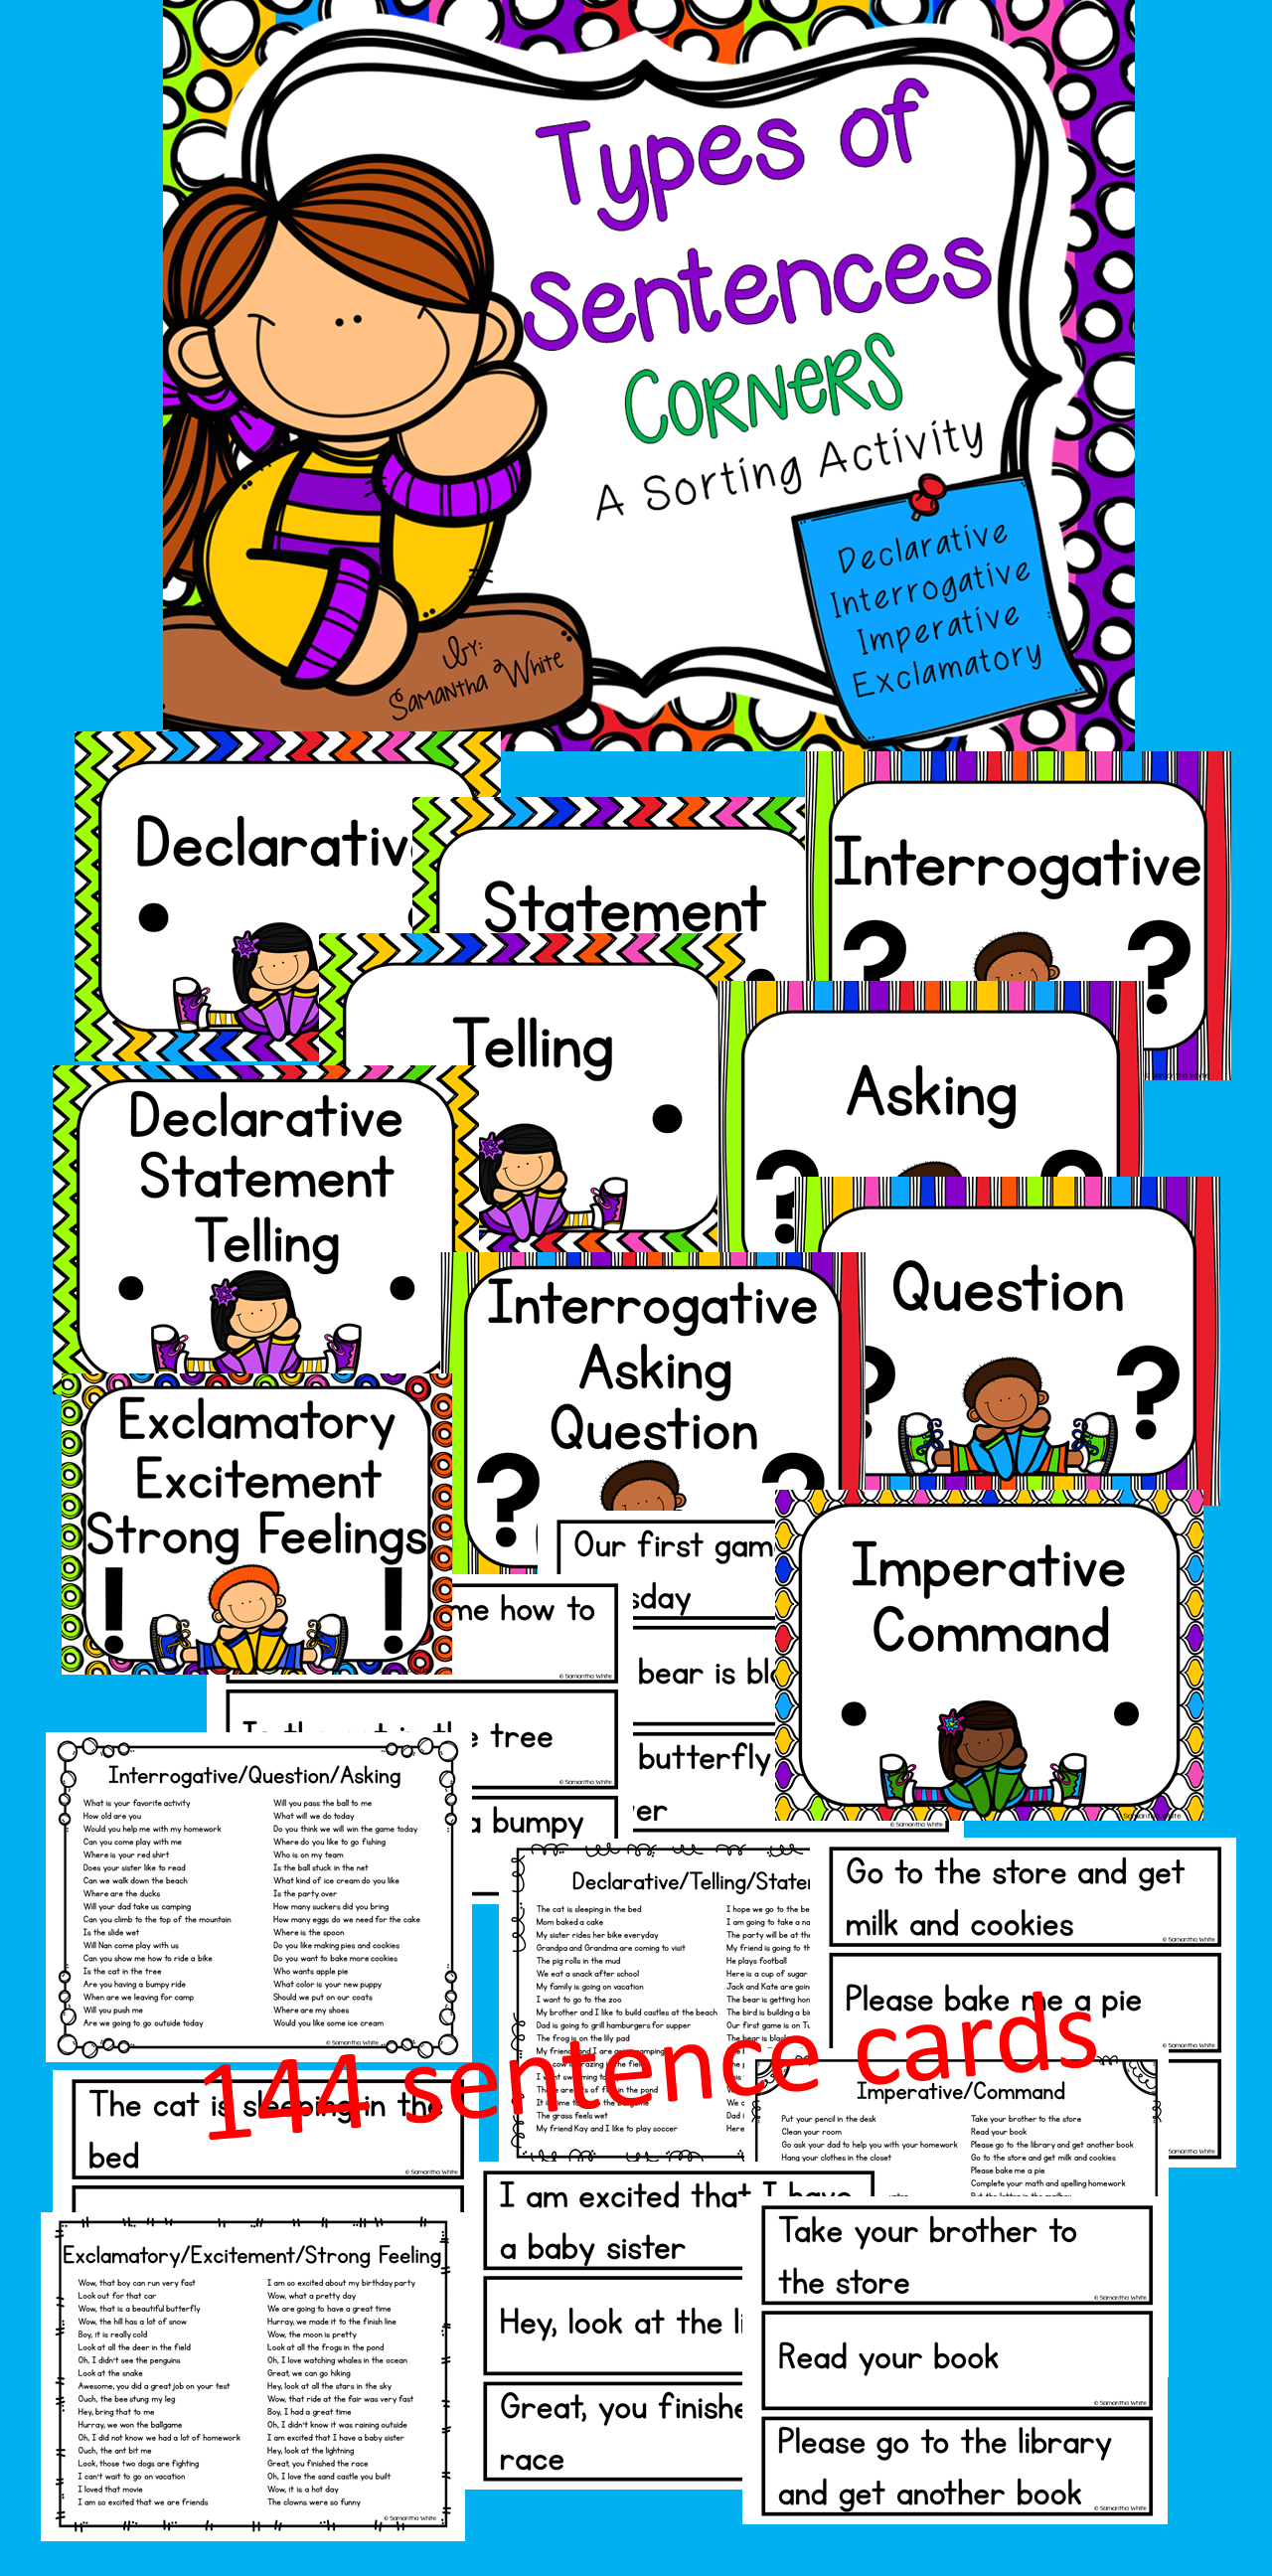 worksheet Declarative Imperative Interrogative Exclamatory Worksheets types of sentences corners activity activities and practice declarative interrogative exclamatory imperative with this sorting